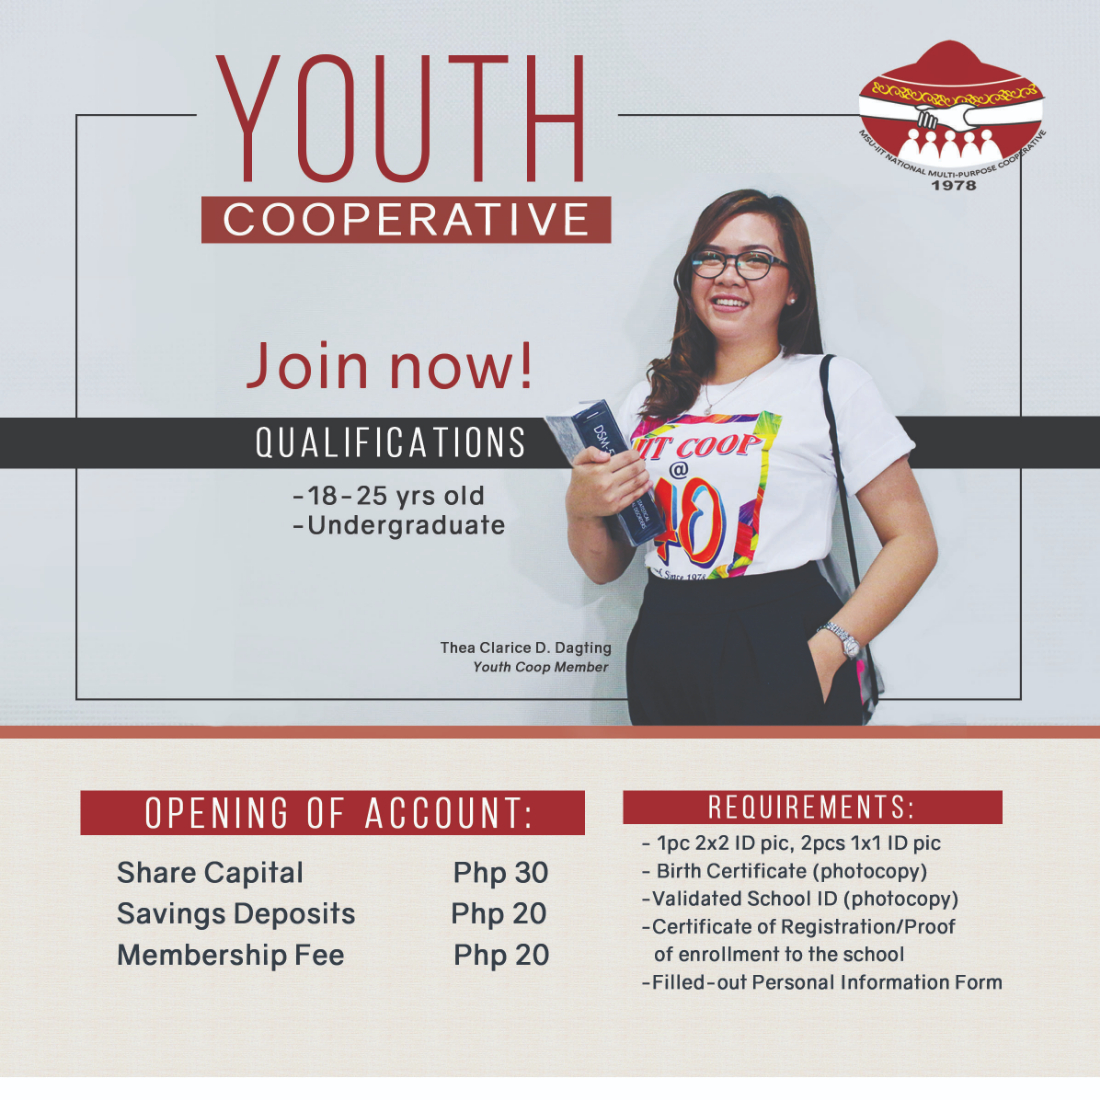 Youth Cooperative